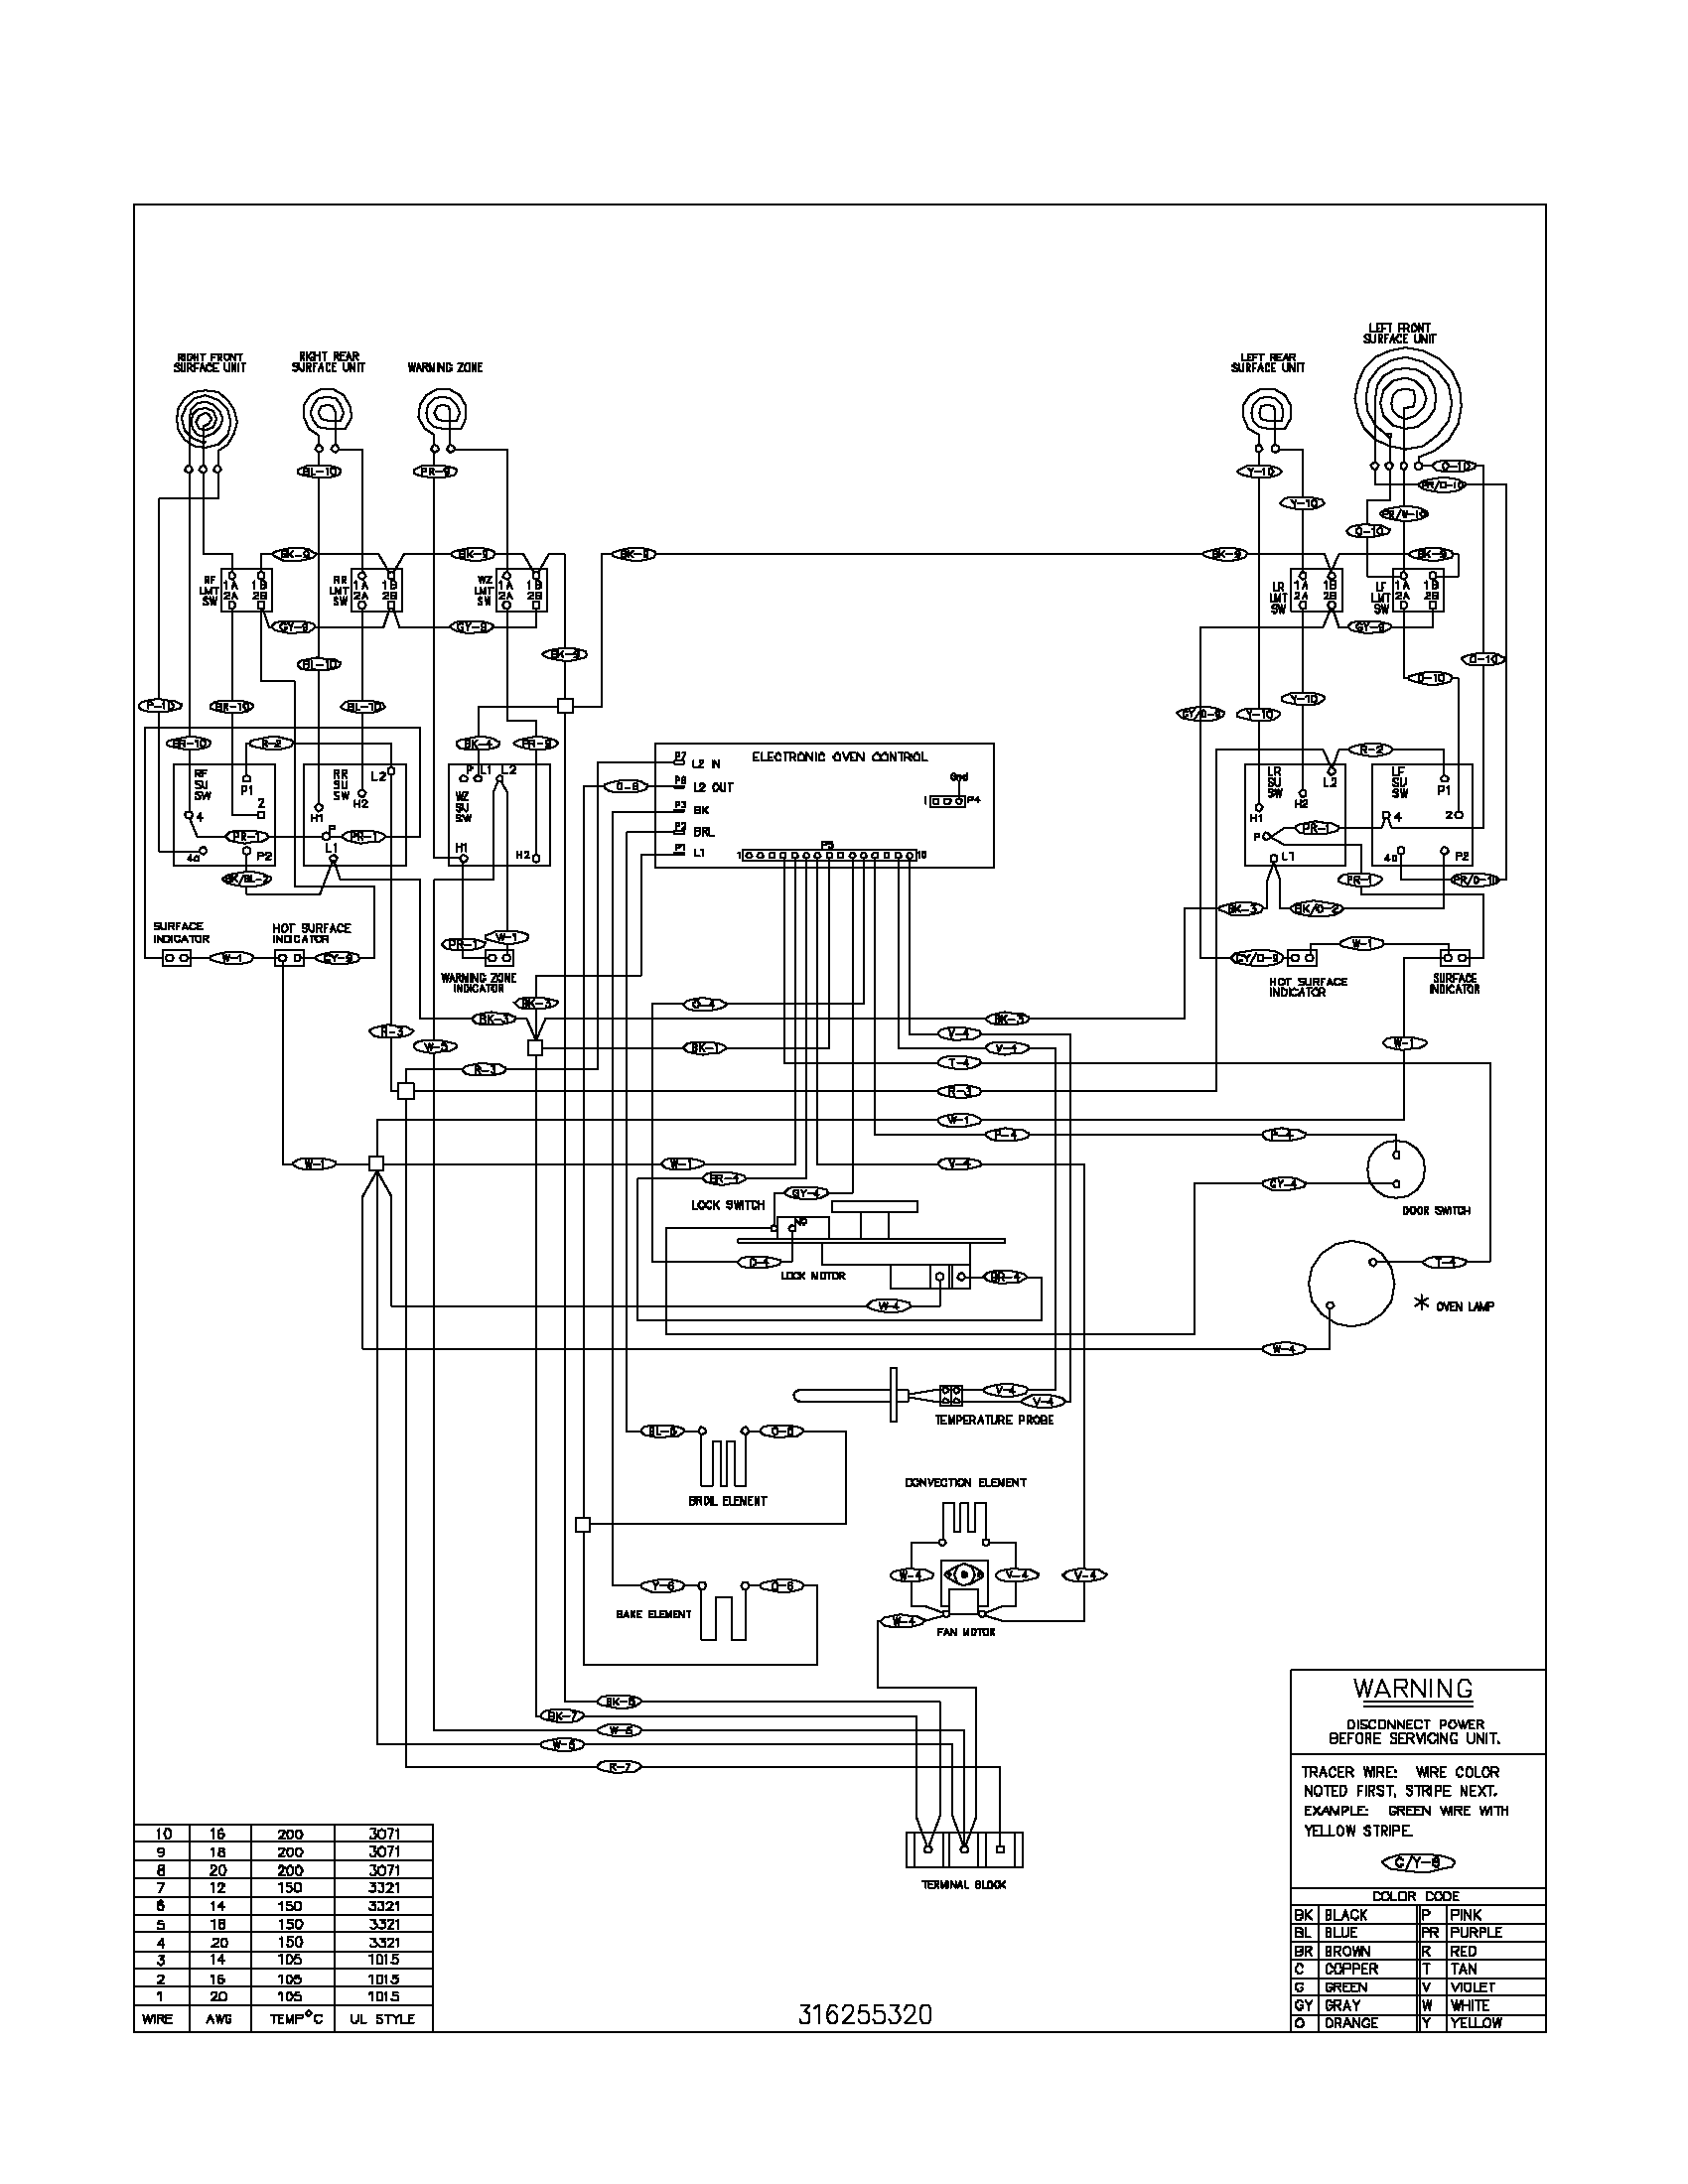 wiring diagram parts whirlpool 6wri24wk electrical circuit diagram refrigerator samsung refrigerator wiring diagram at gsmx.co